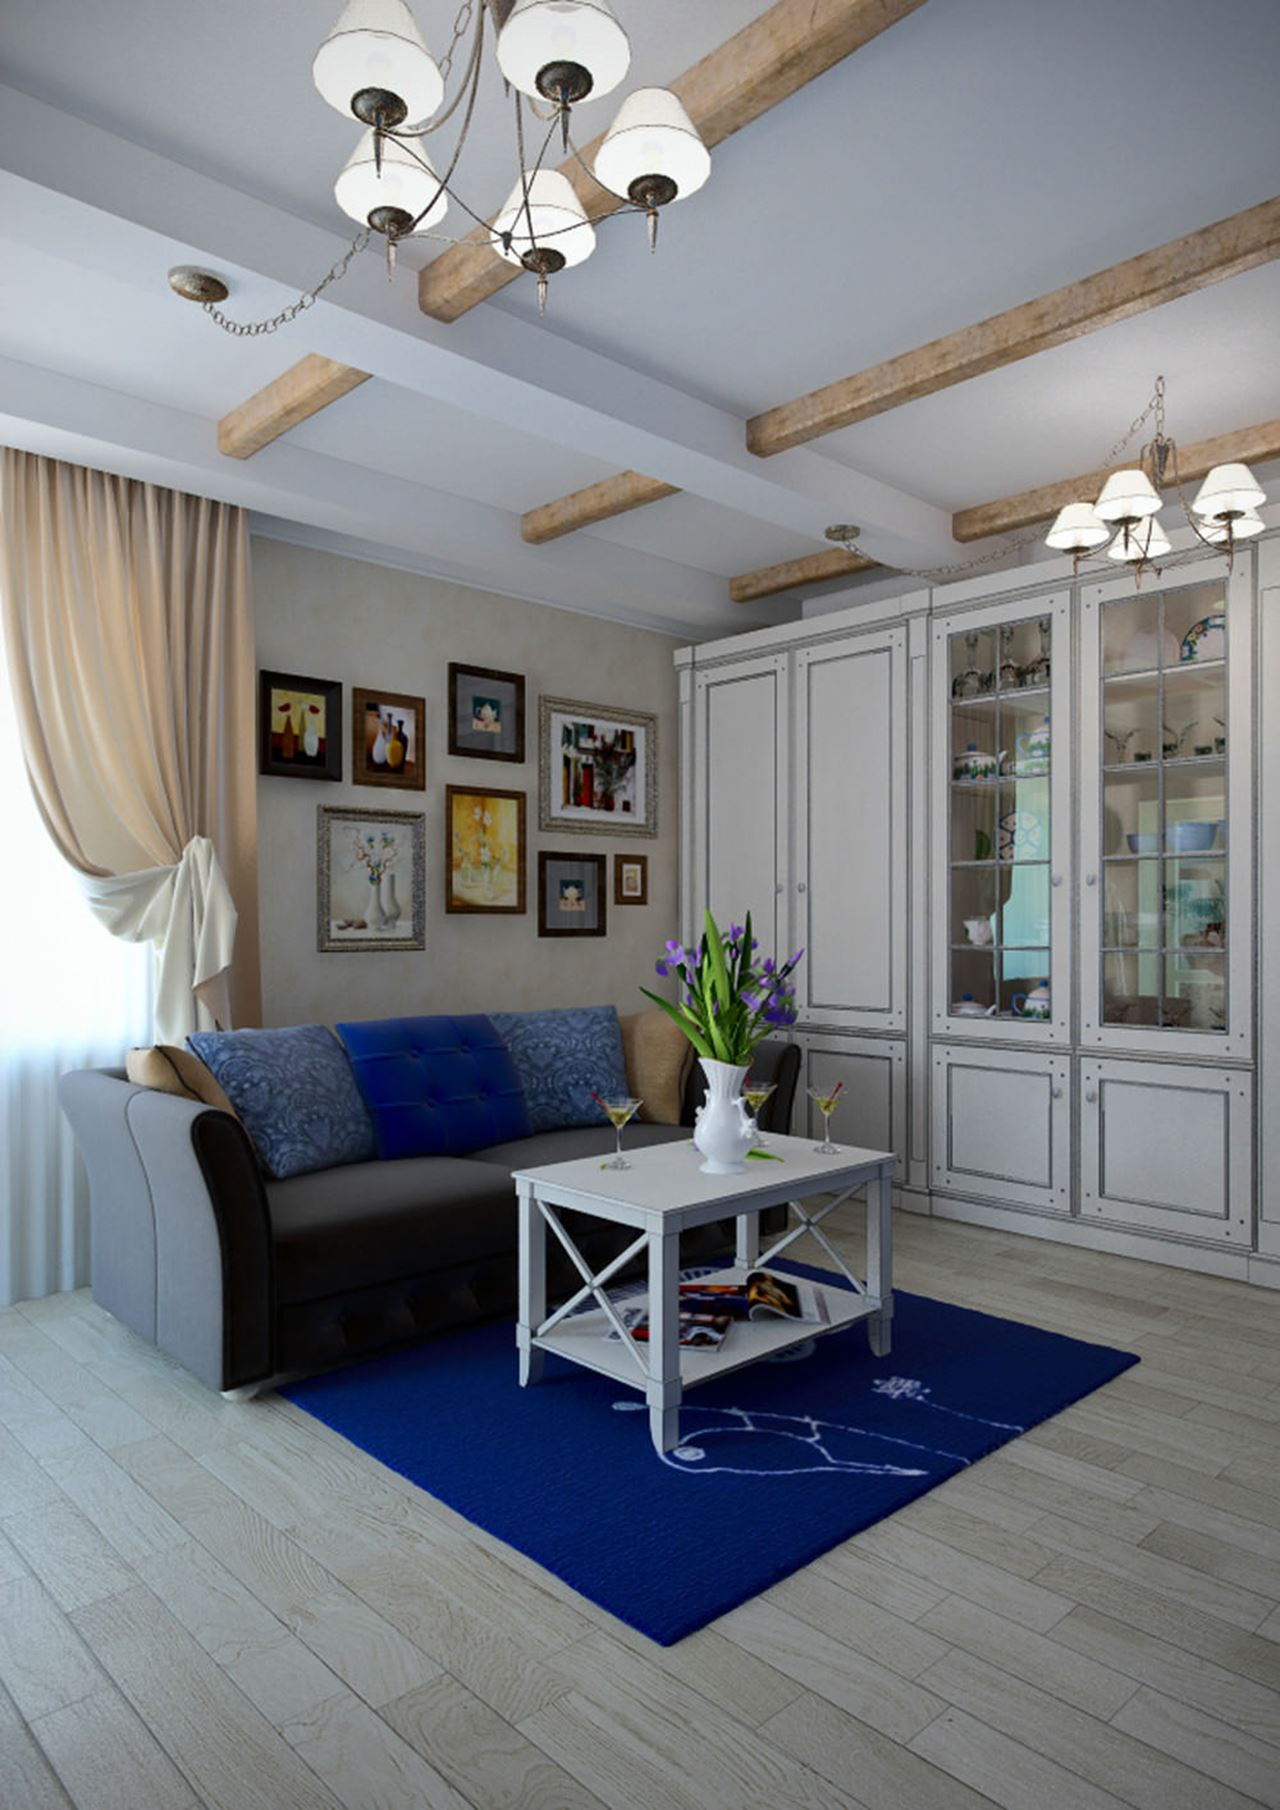 Apartment Living Room Design: Apartment Interior Design In The Provence Style